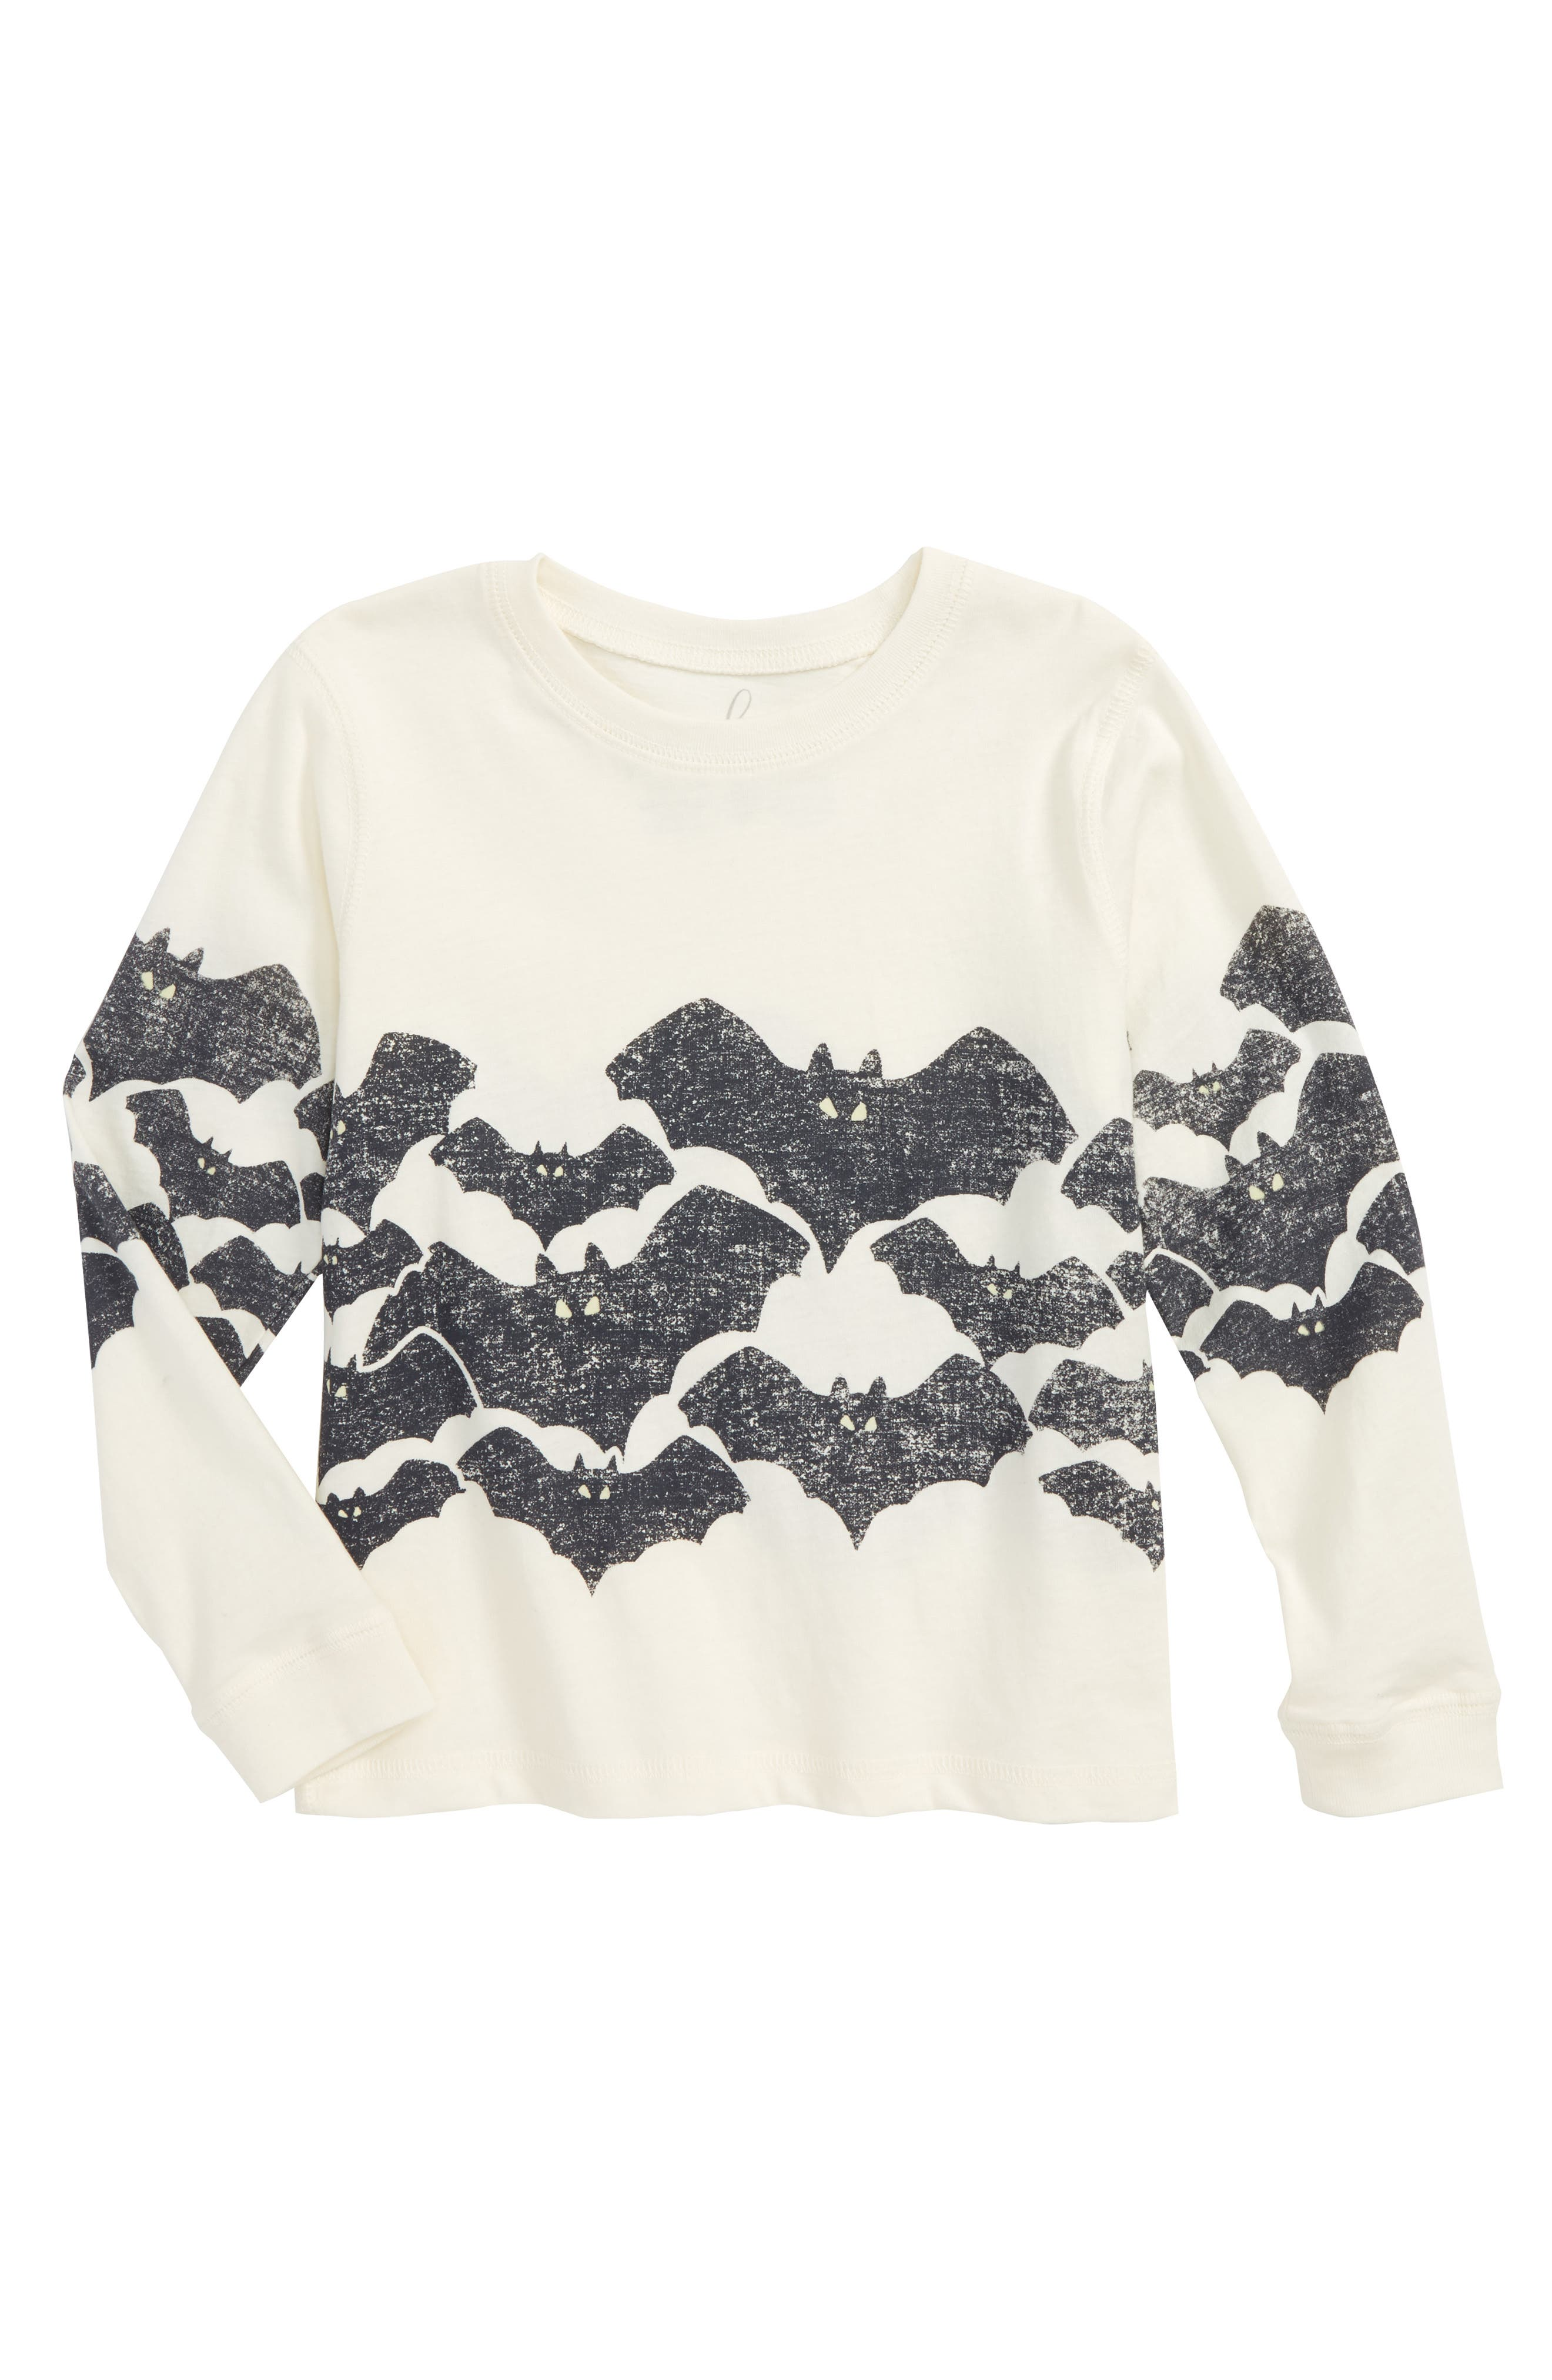 Bats Glow in the Dark T-Shirt,                         Main,                         color, Ivory